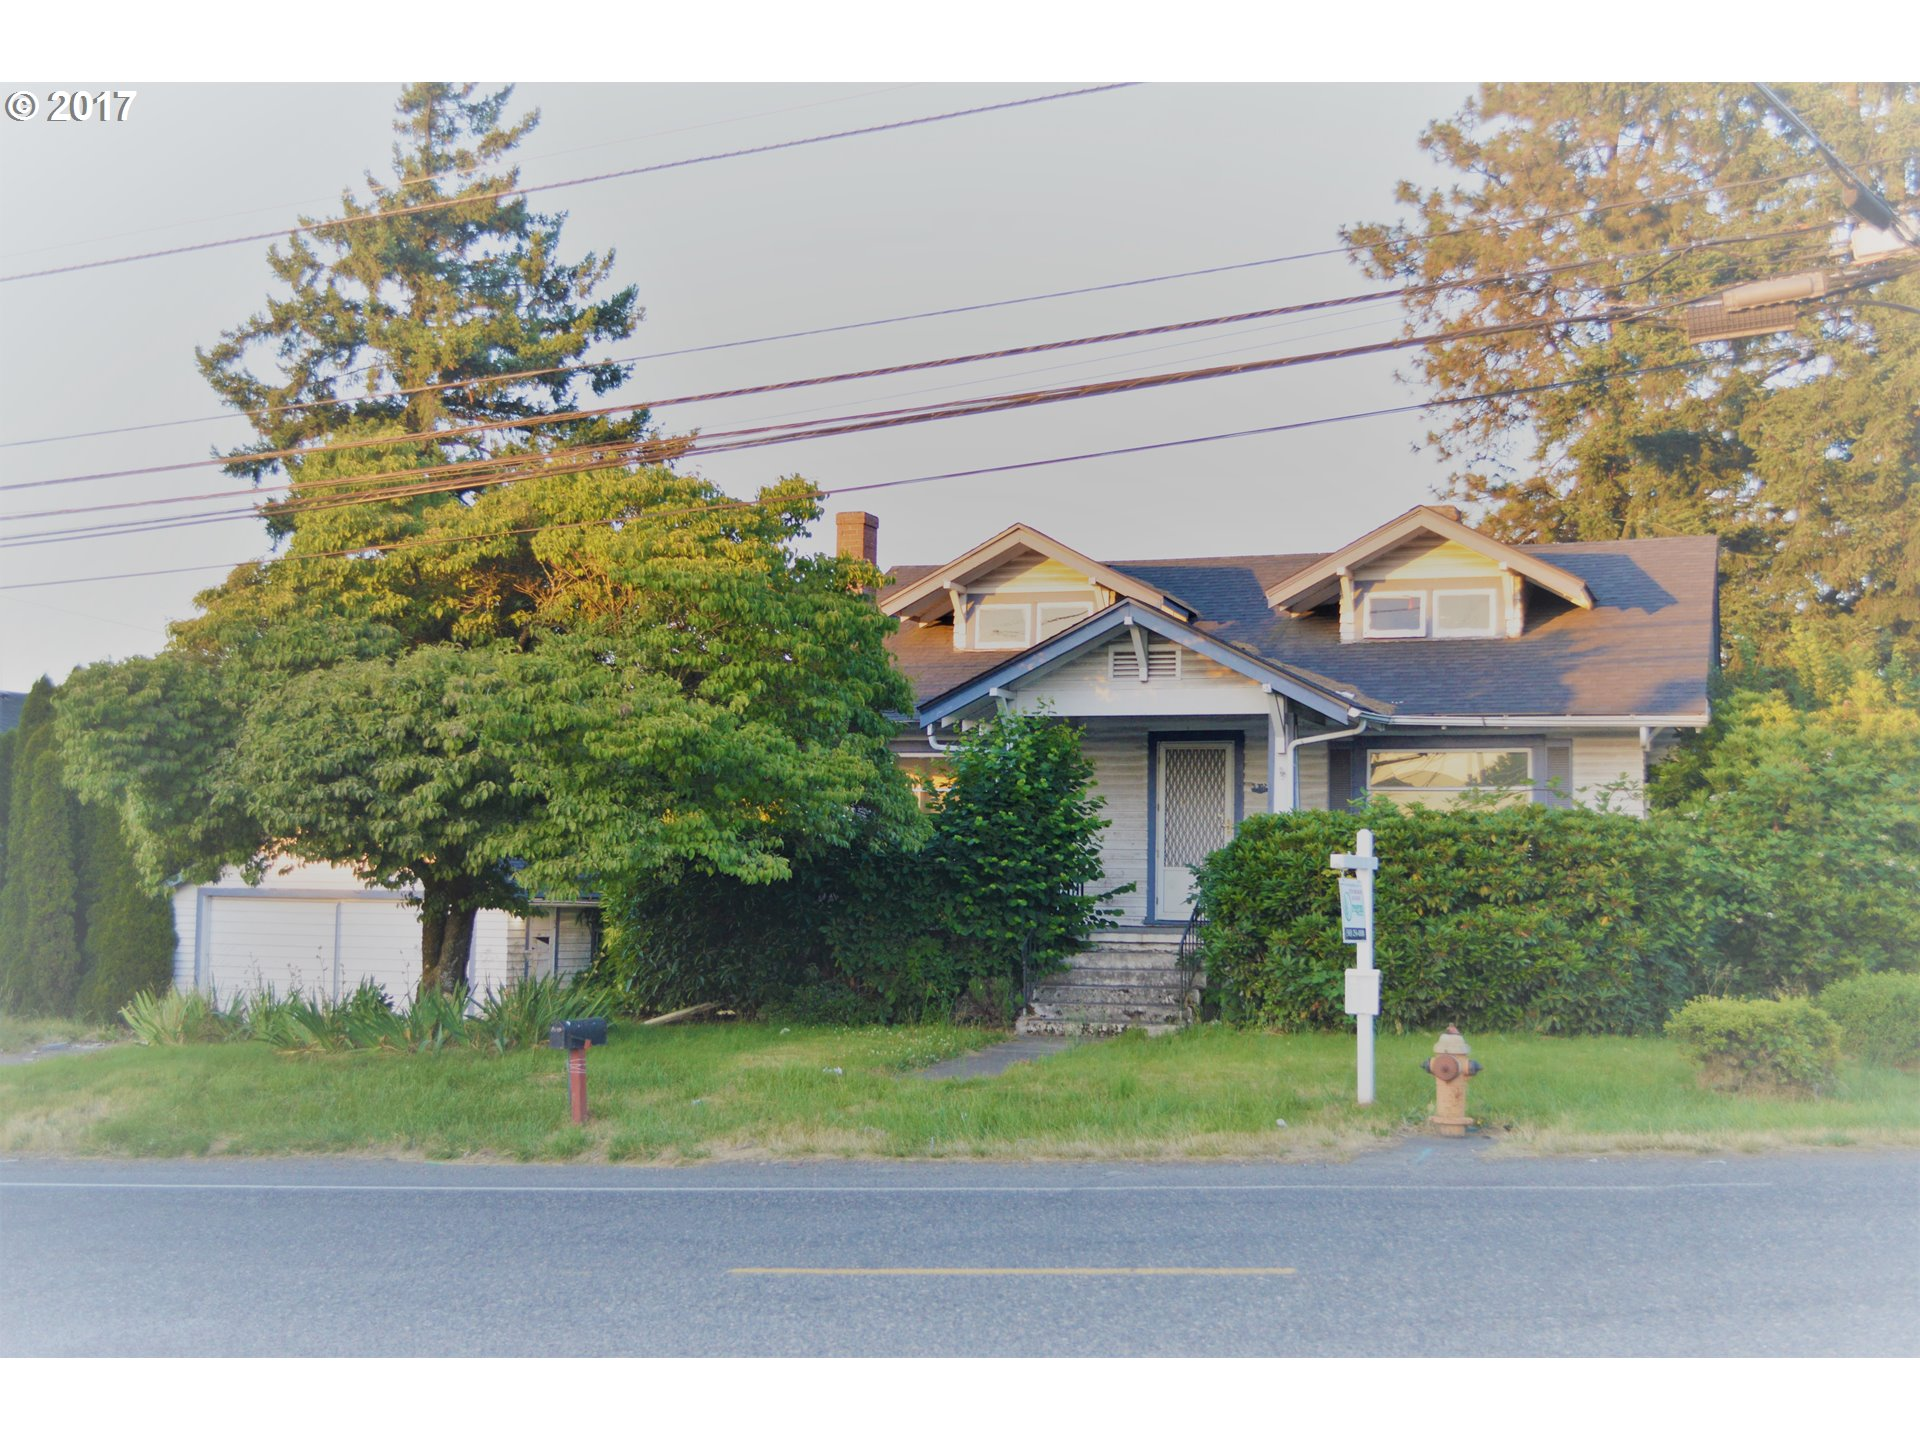 Good old Bungalo house w/ huge over 17,000 sqft corner lot with two street access gates. Four bedrooms & 2 baths, brick fireplace, woodwalls, formal dining room, finished basement w/ in & outside access, huge porch & more. Seller's investment property so please do your own research about the property. Please check w/ your lender about the presidential on the commercial zoned. Perfect for living & working as one. Seller to do no repairs